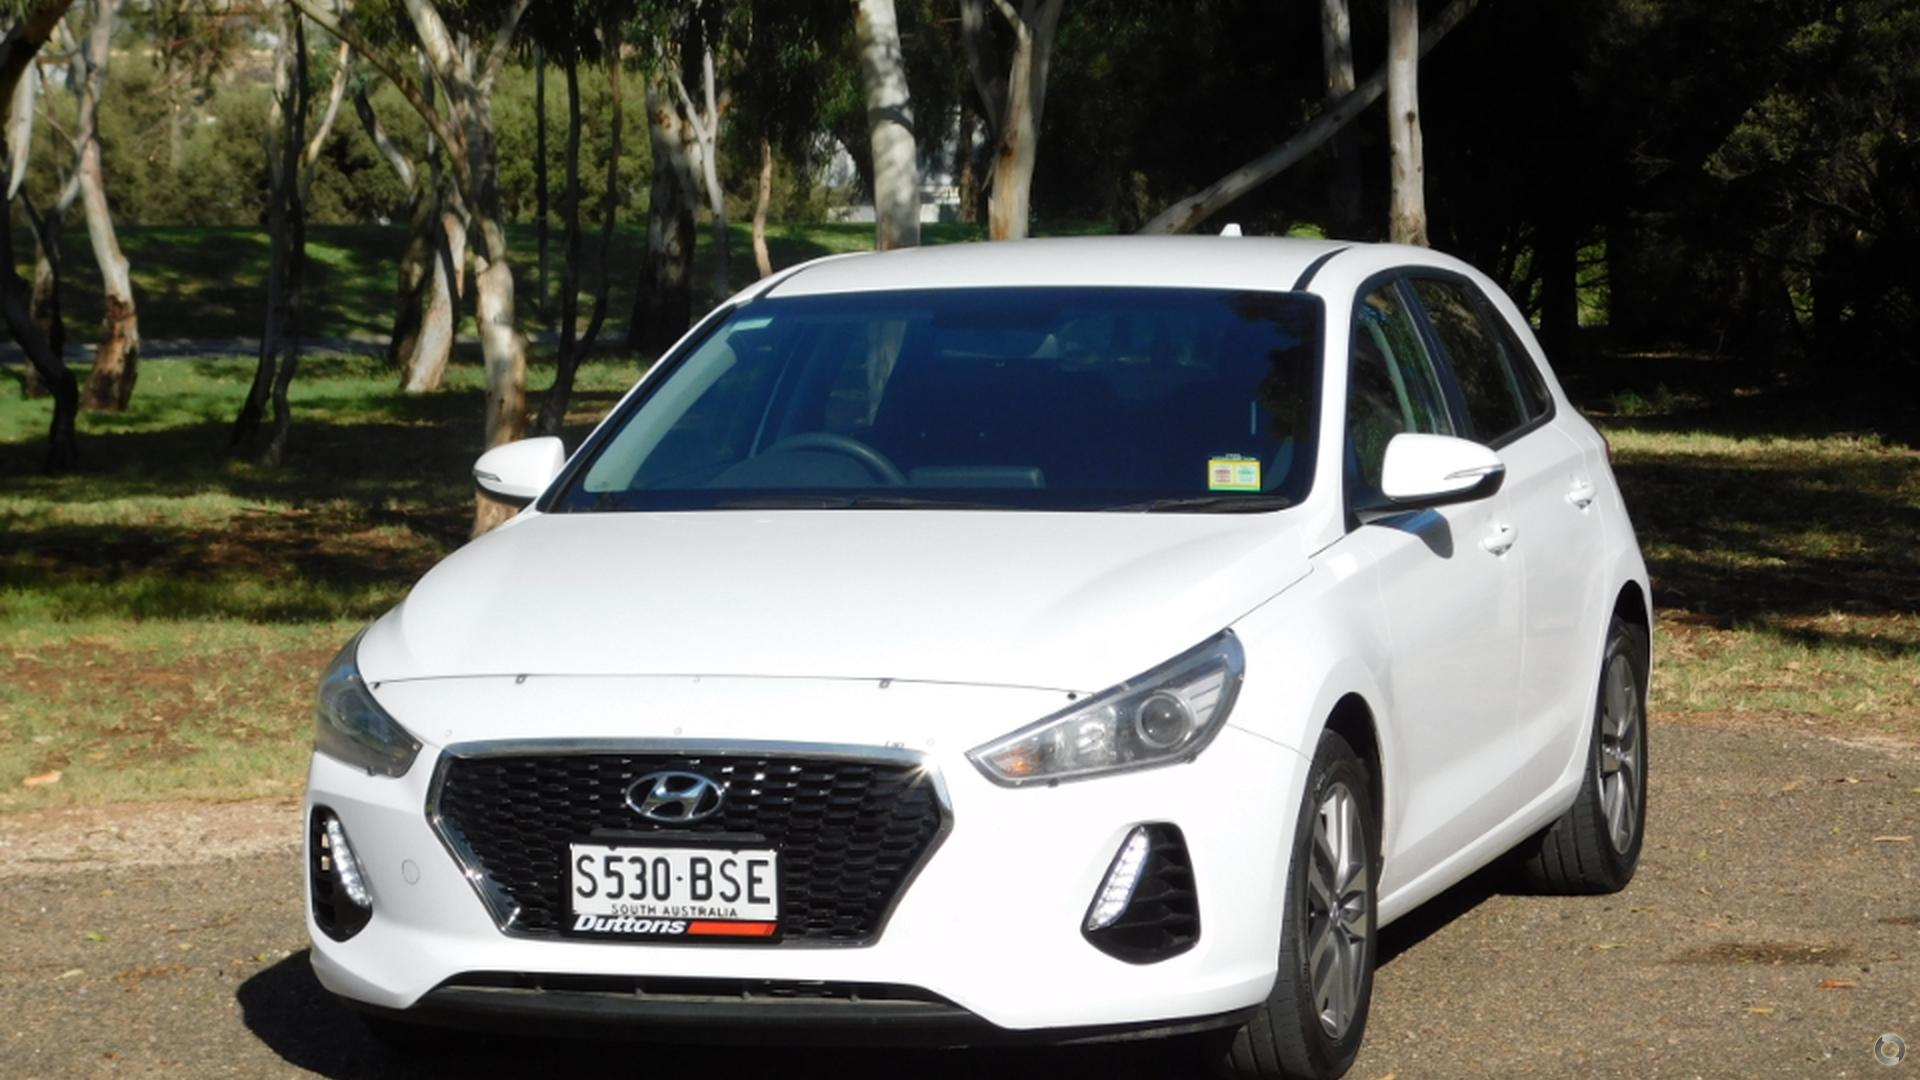 2017 hyundai i30 active pd duttons murray bridge mitsubishi. Black Bedroom Furniture Sets. Home Design Ideas